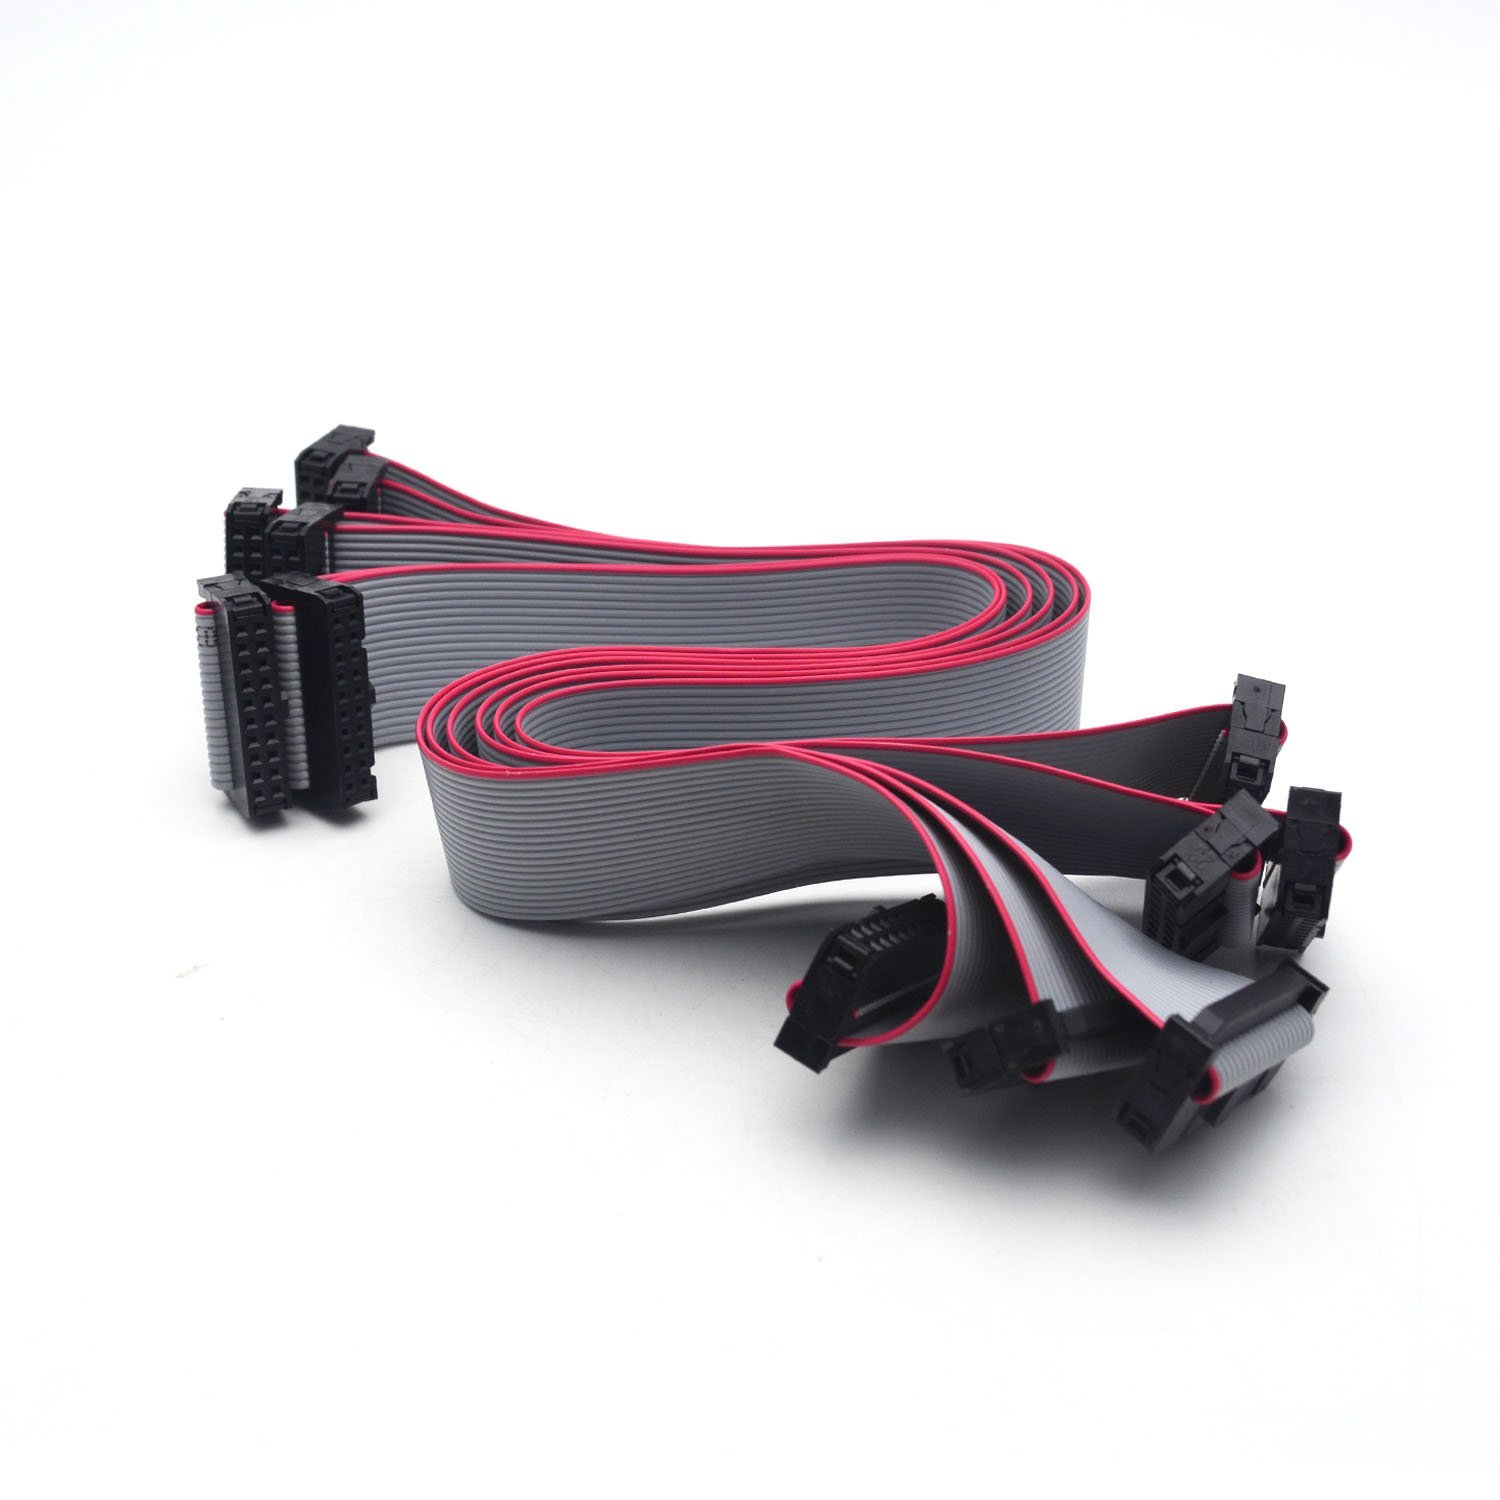 2x5 5-Pack 1ft. Female to Female 2.54mm-Pitch 10-wire IDC Flat Ribbon Cables